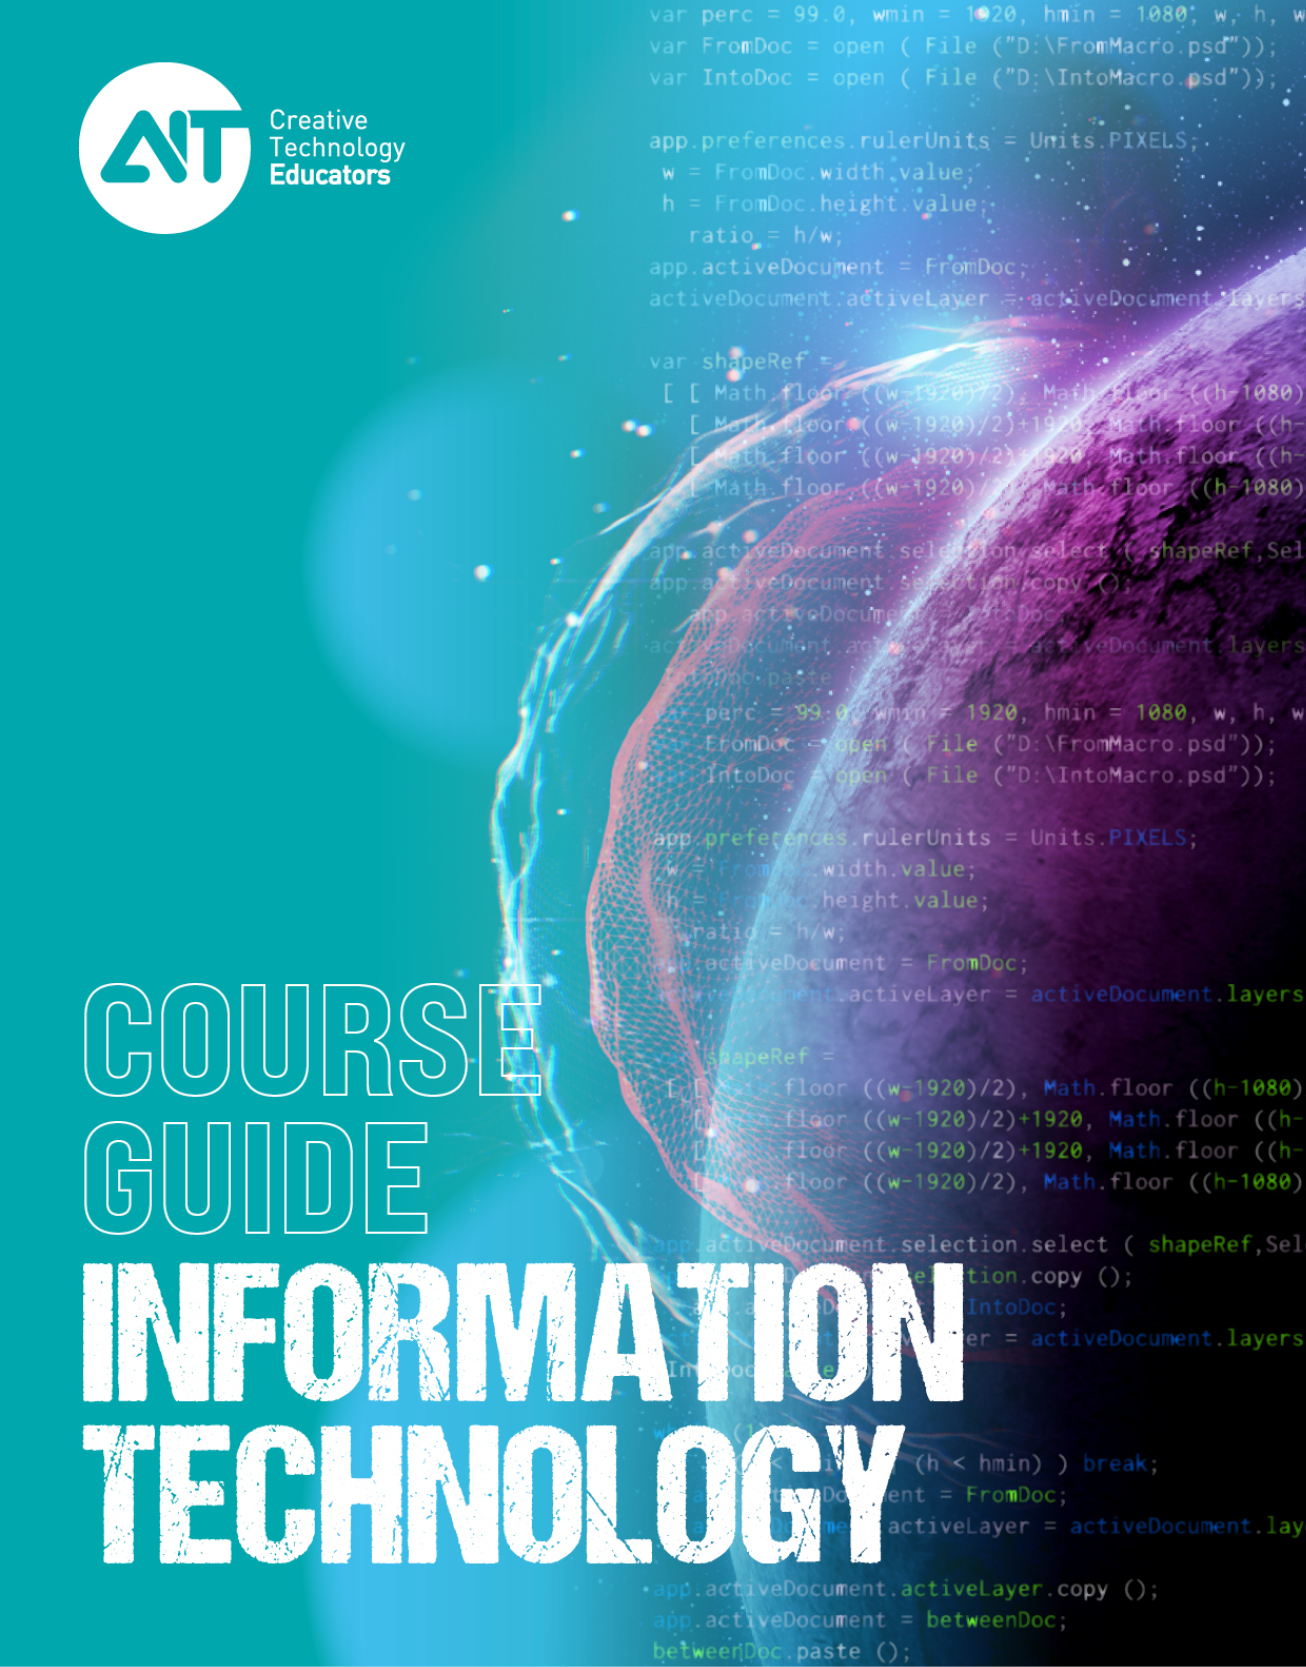 Course Guide - Information Technology